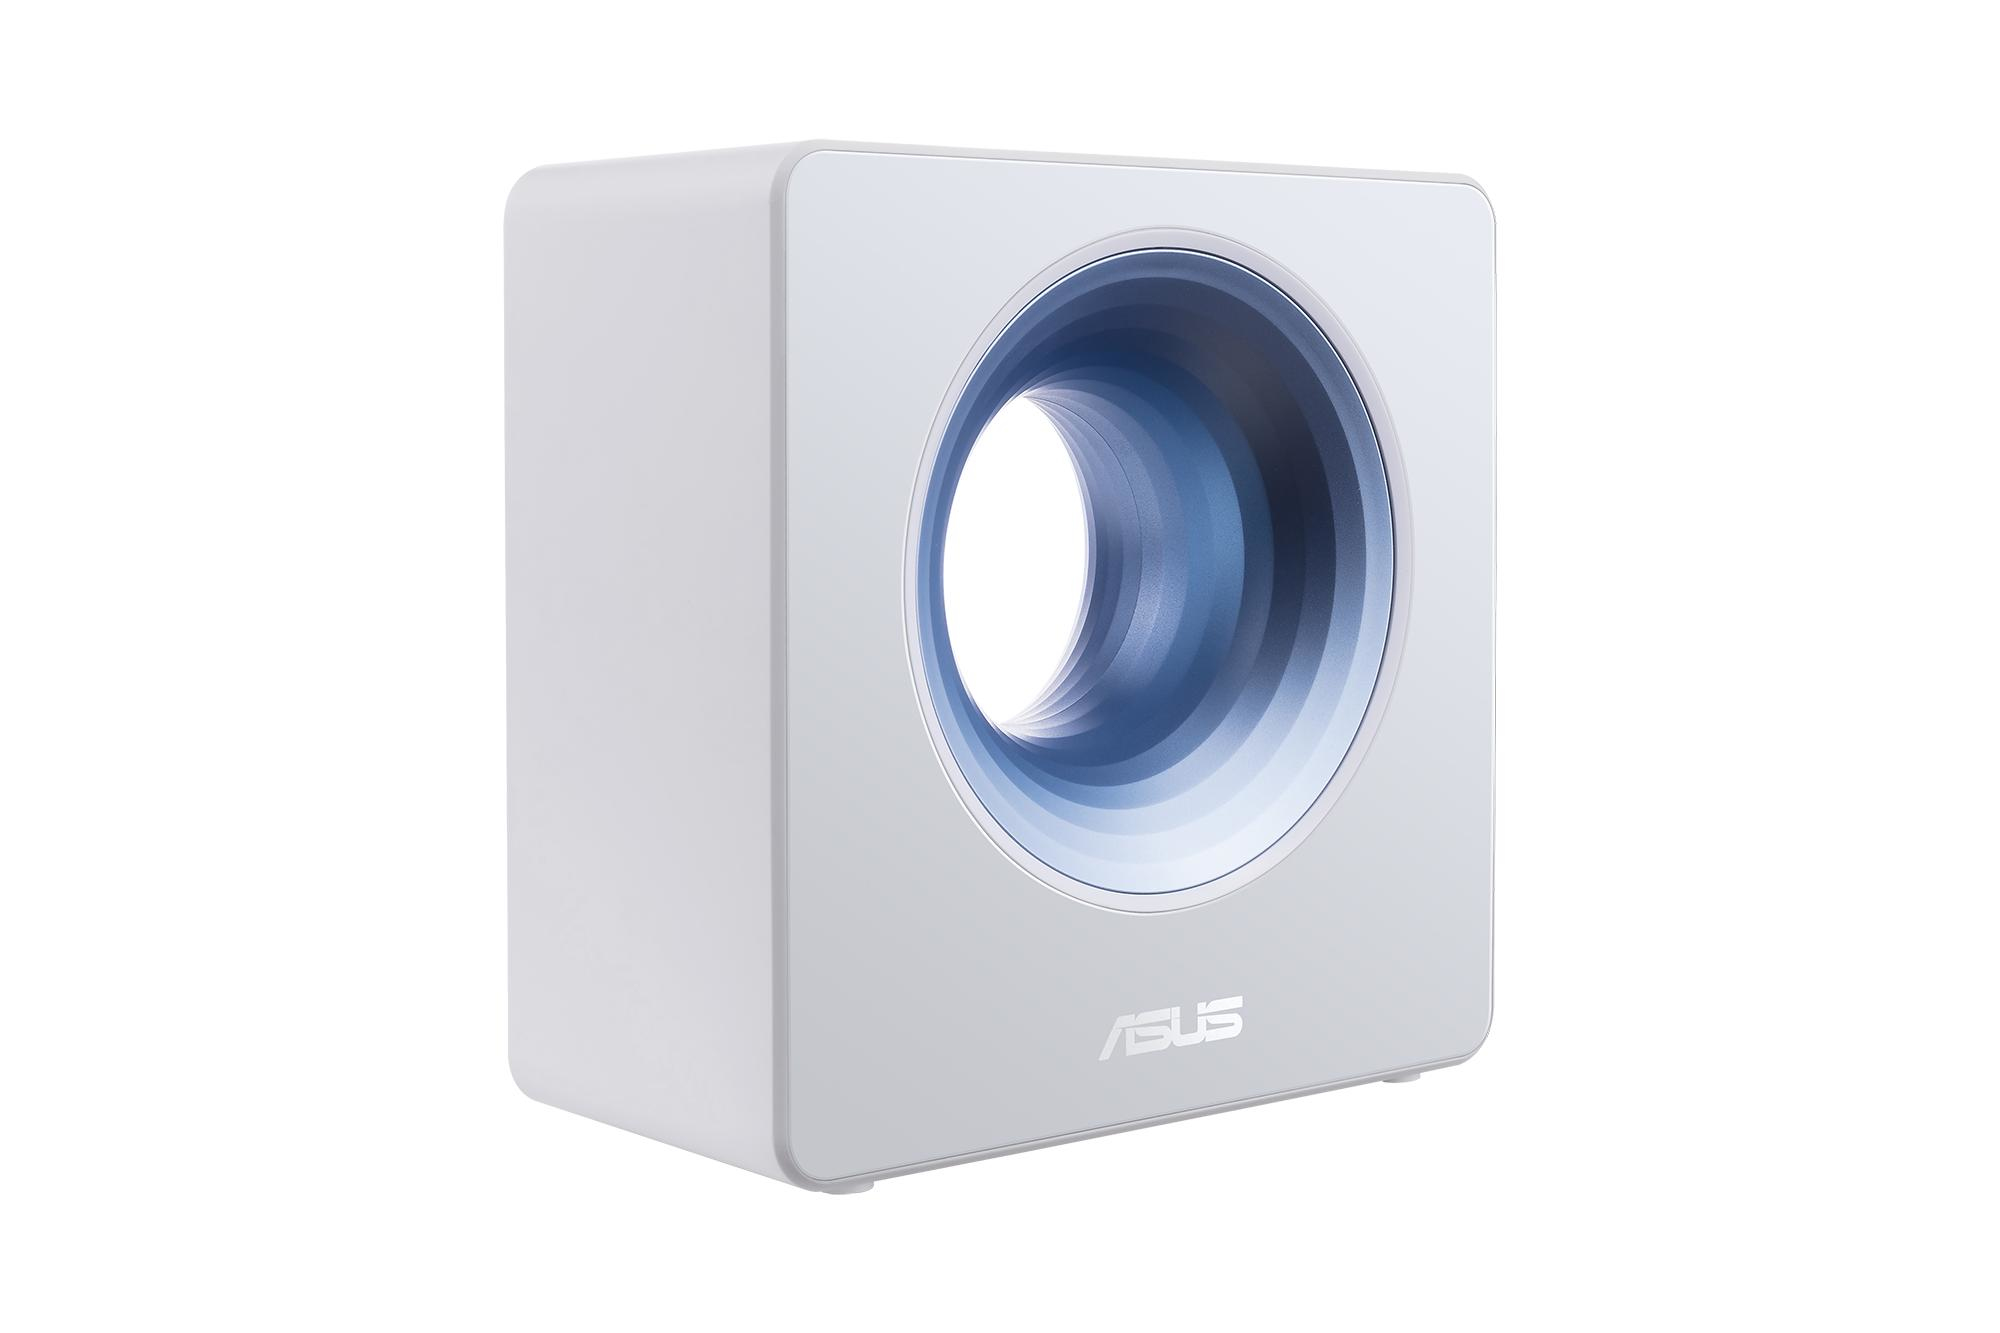 Asus Blue Cave Wireless Router Dual Band 2 4 Ghz 5 Ghz